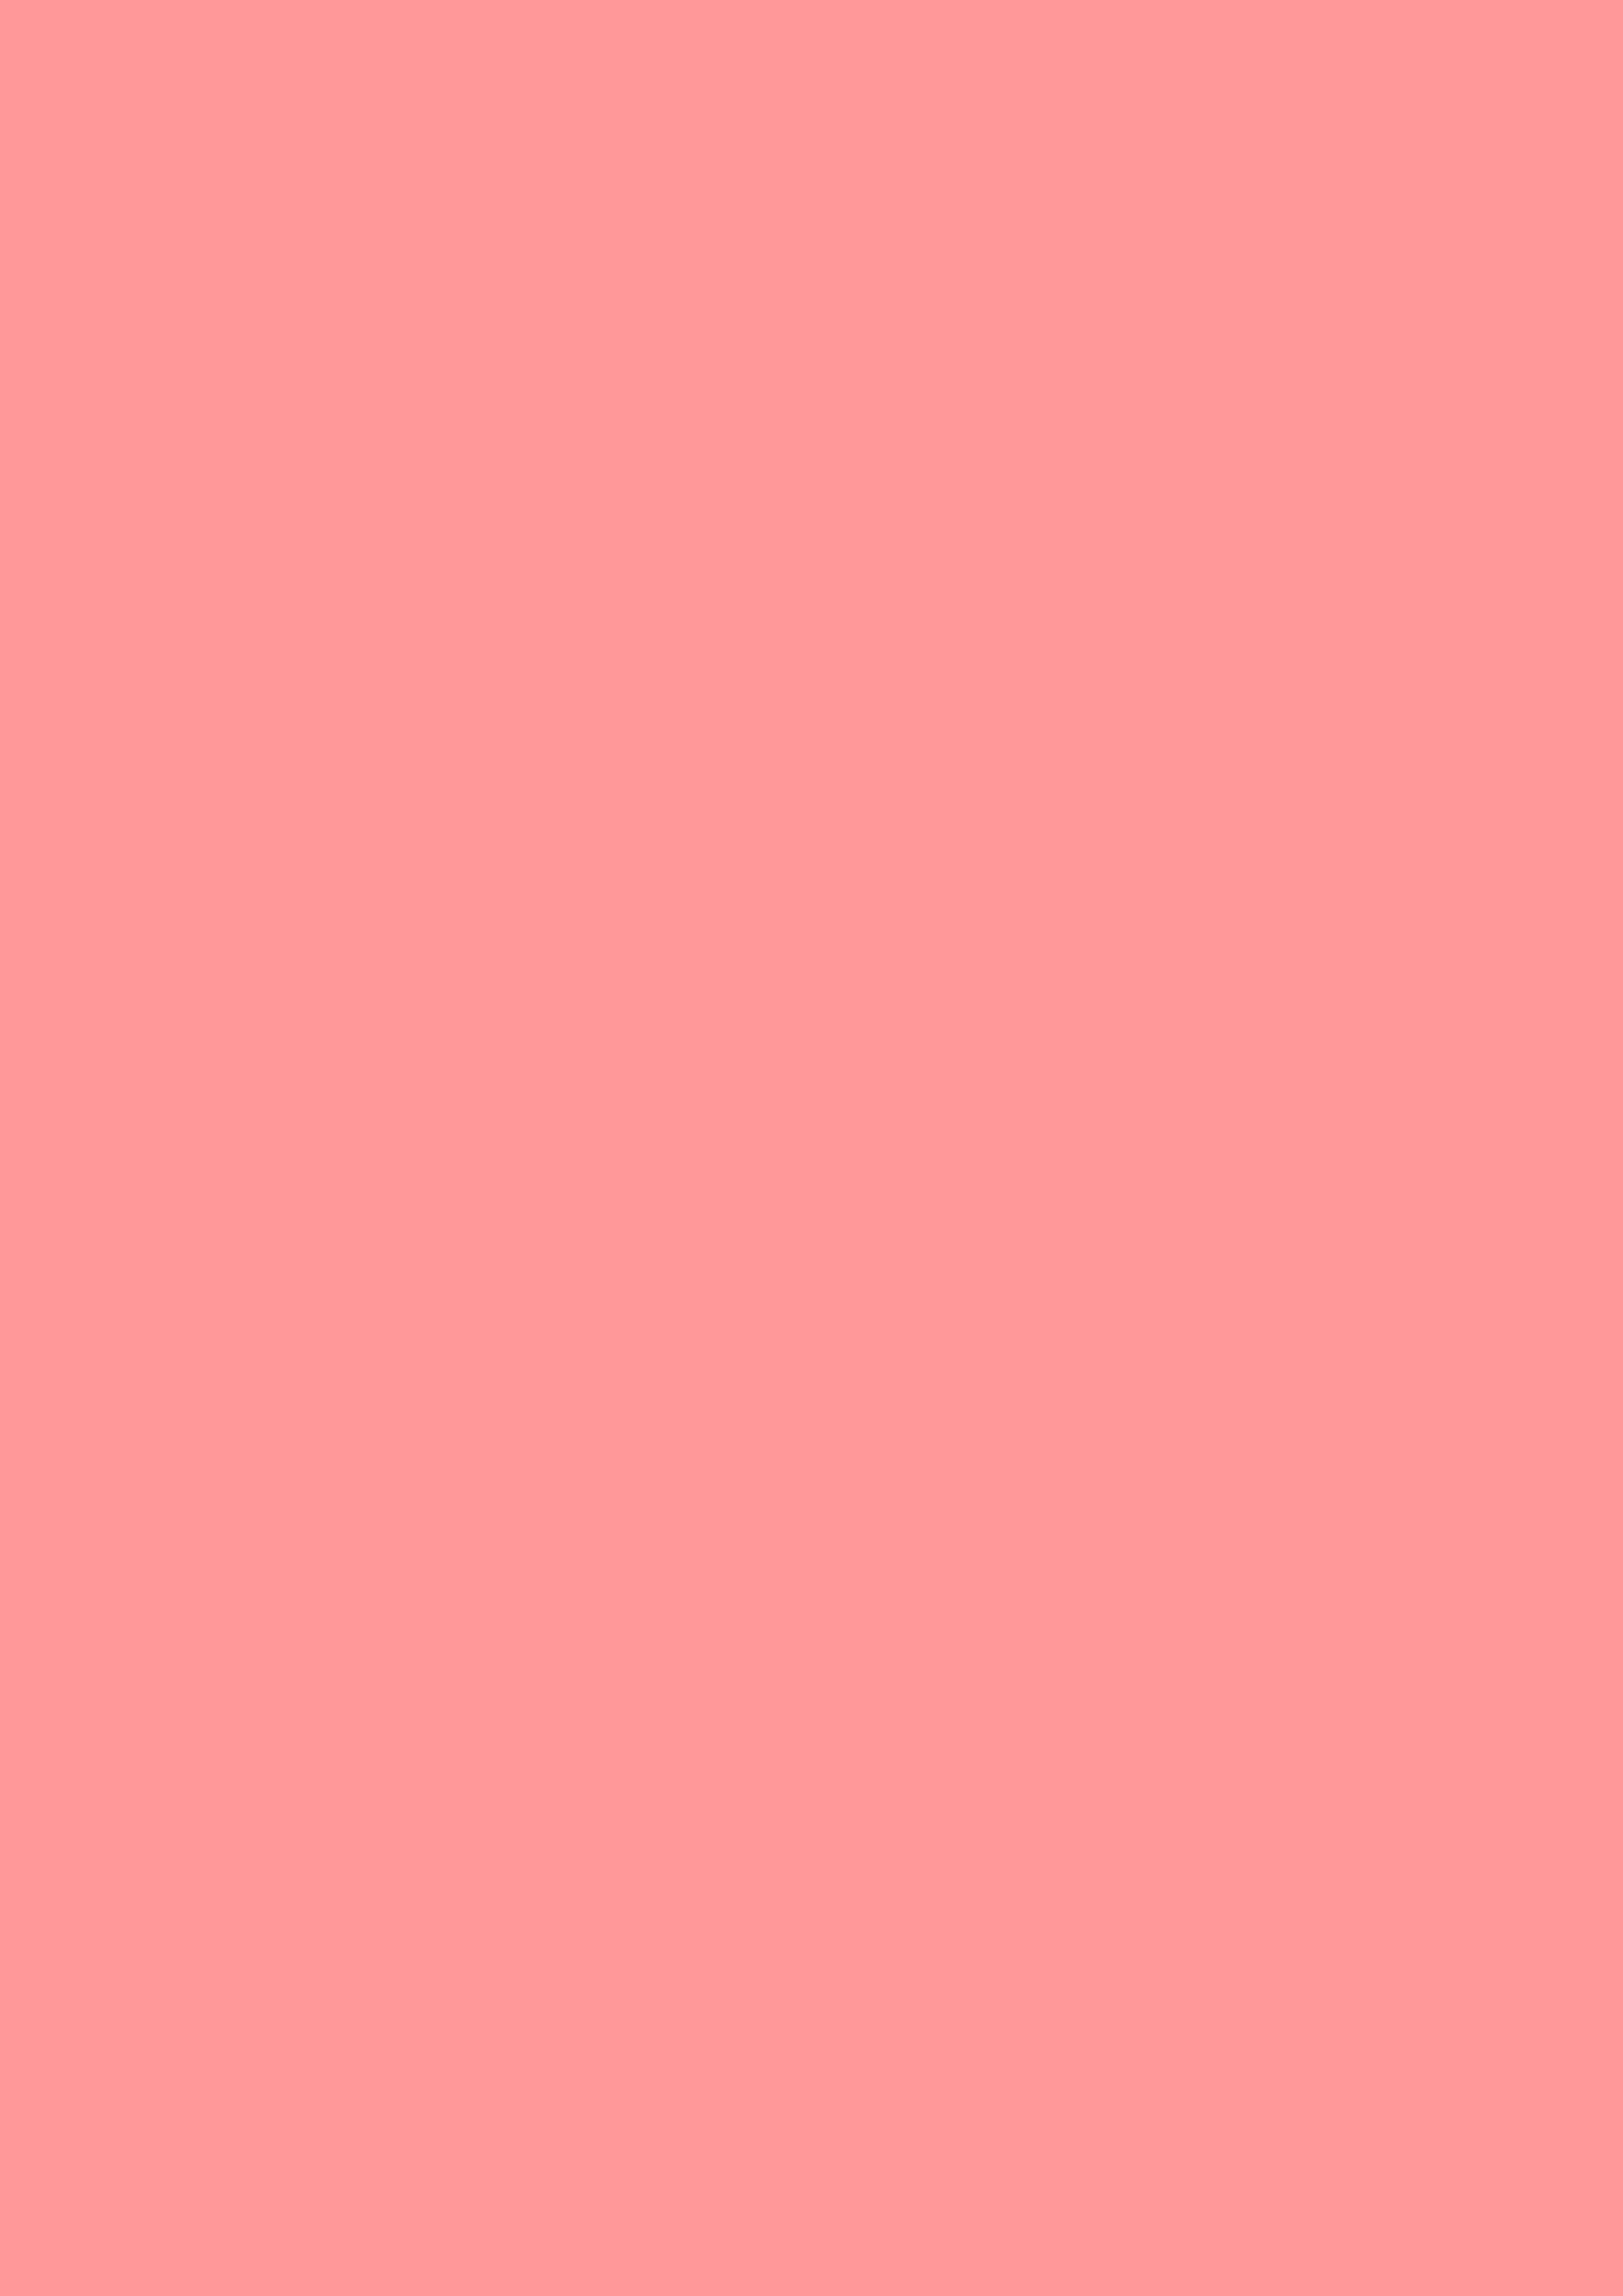 2480x3508 Light Salmon Pink Solid Color Background